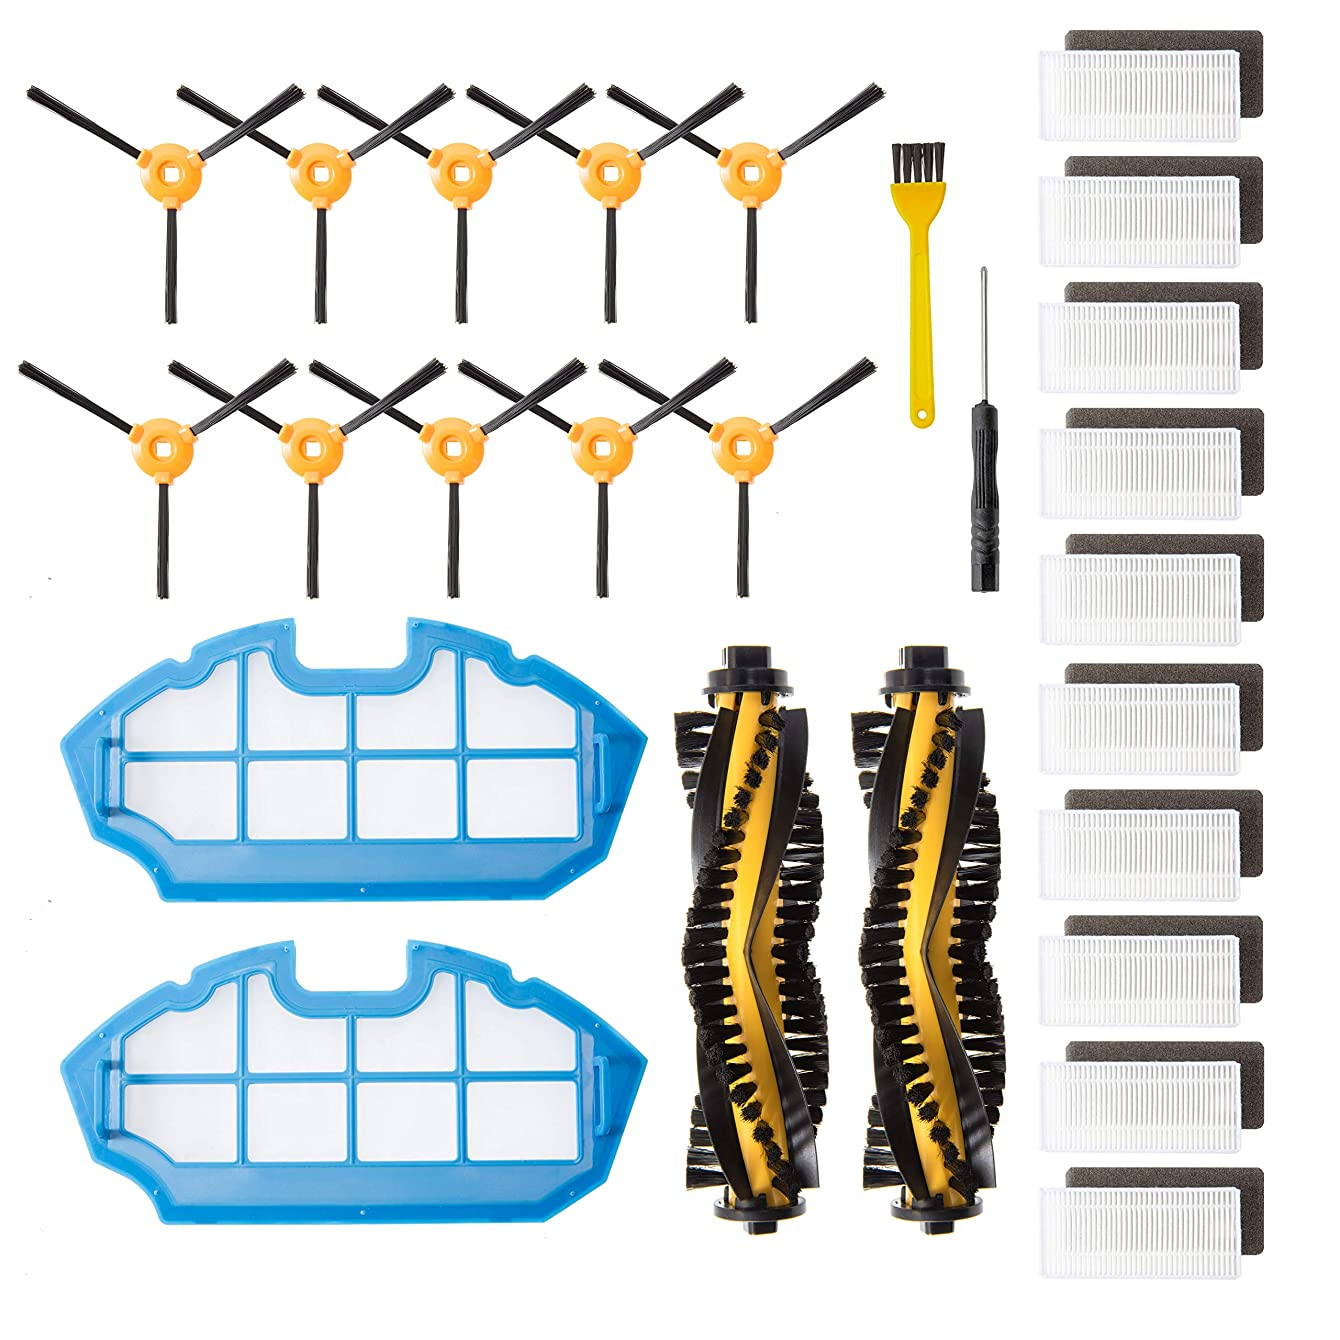 Helen Kayes Deluxe Set of Replacement Parts and Accessories Compatible with Ecovacs Deebot N79 and N79S Robotic Vacuum Cleaners (2+2+10+10)